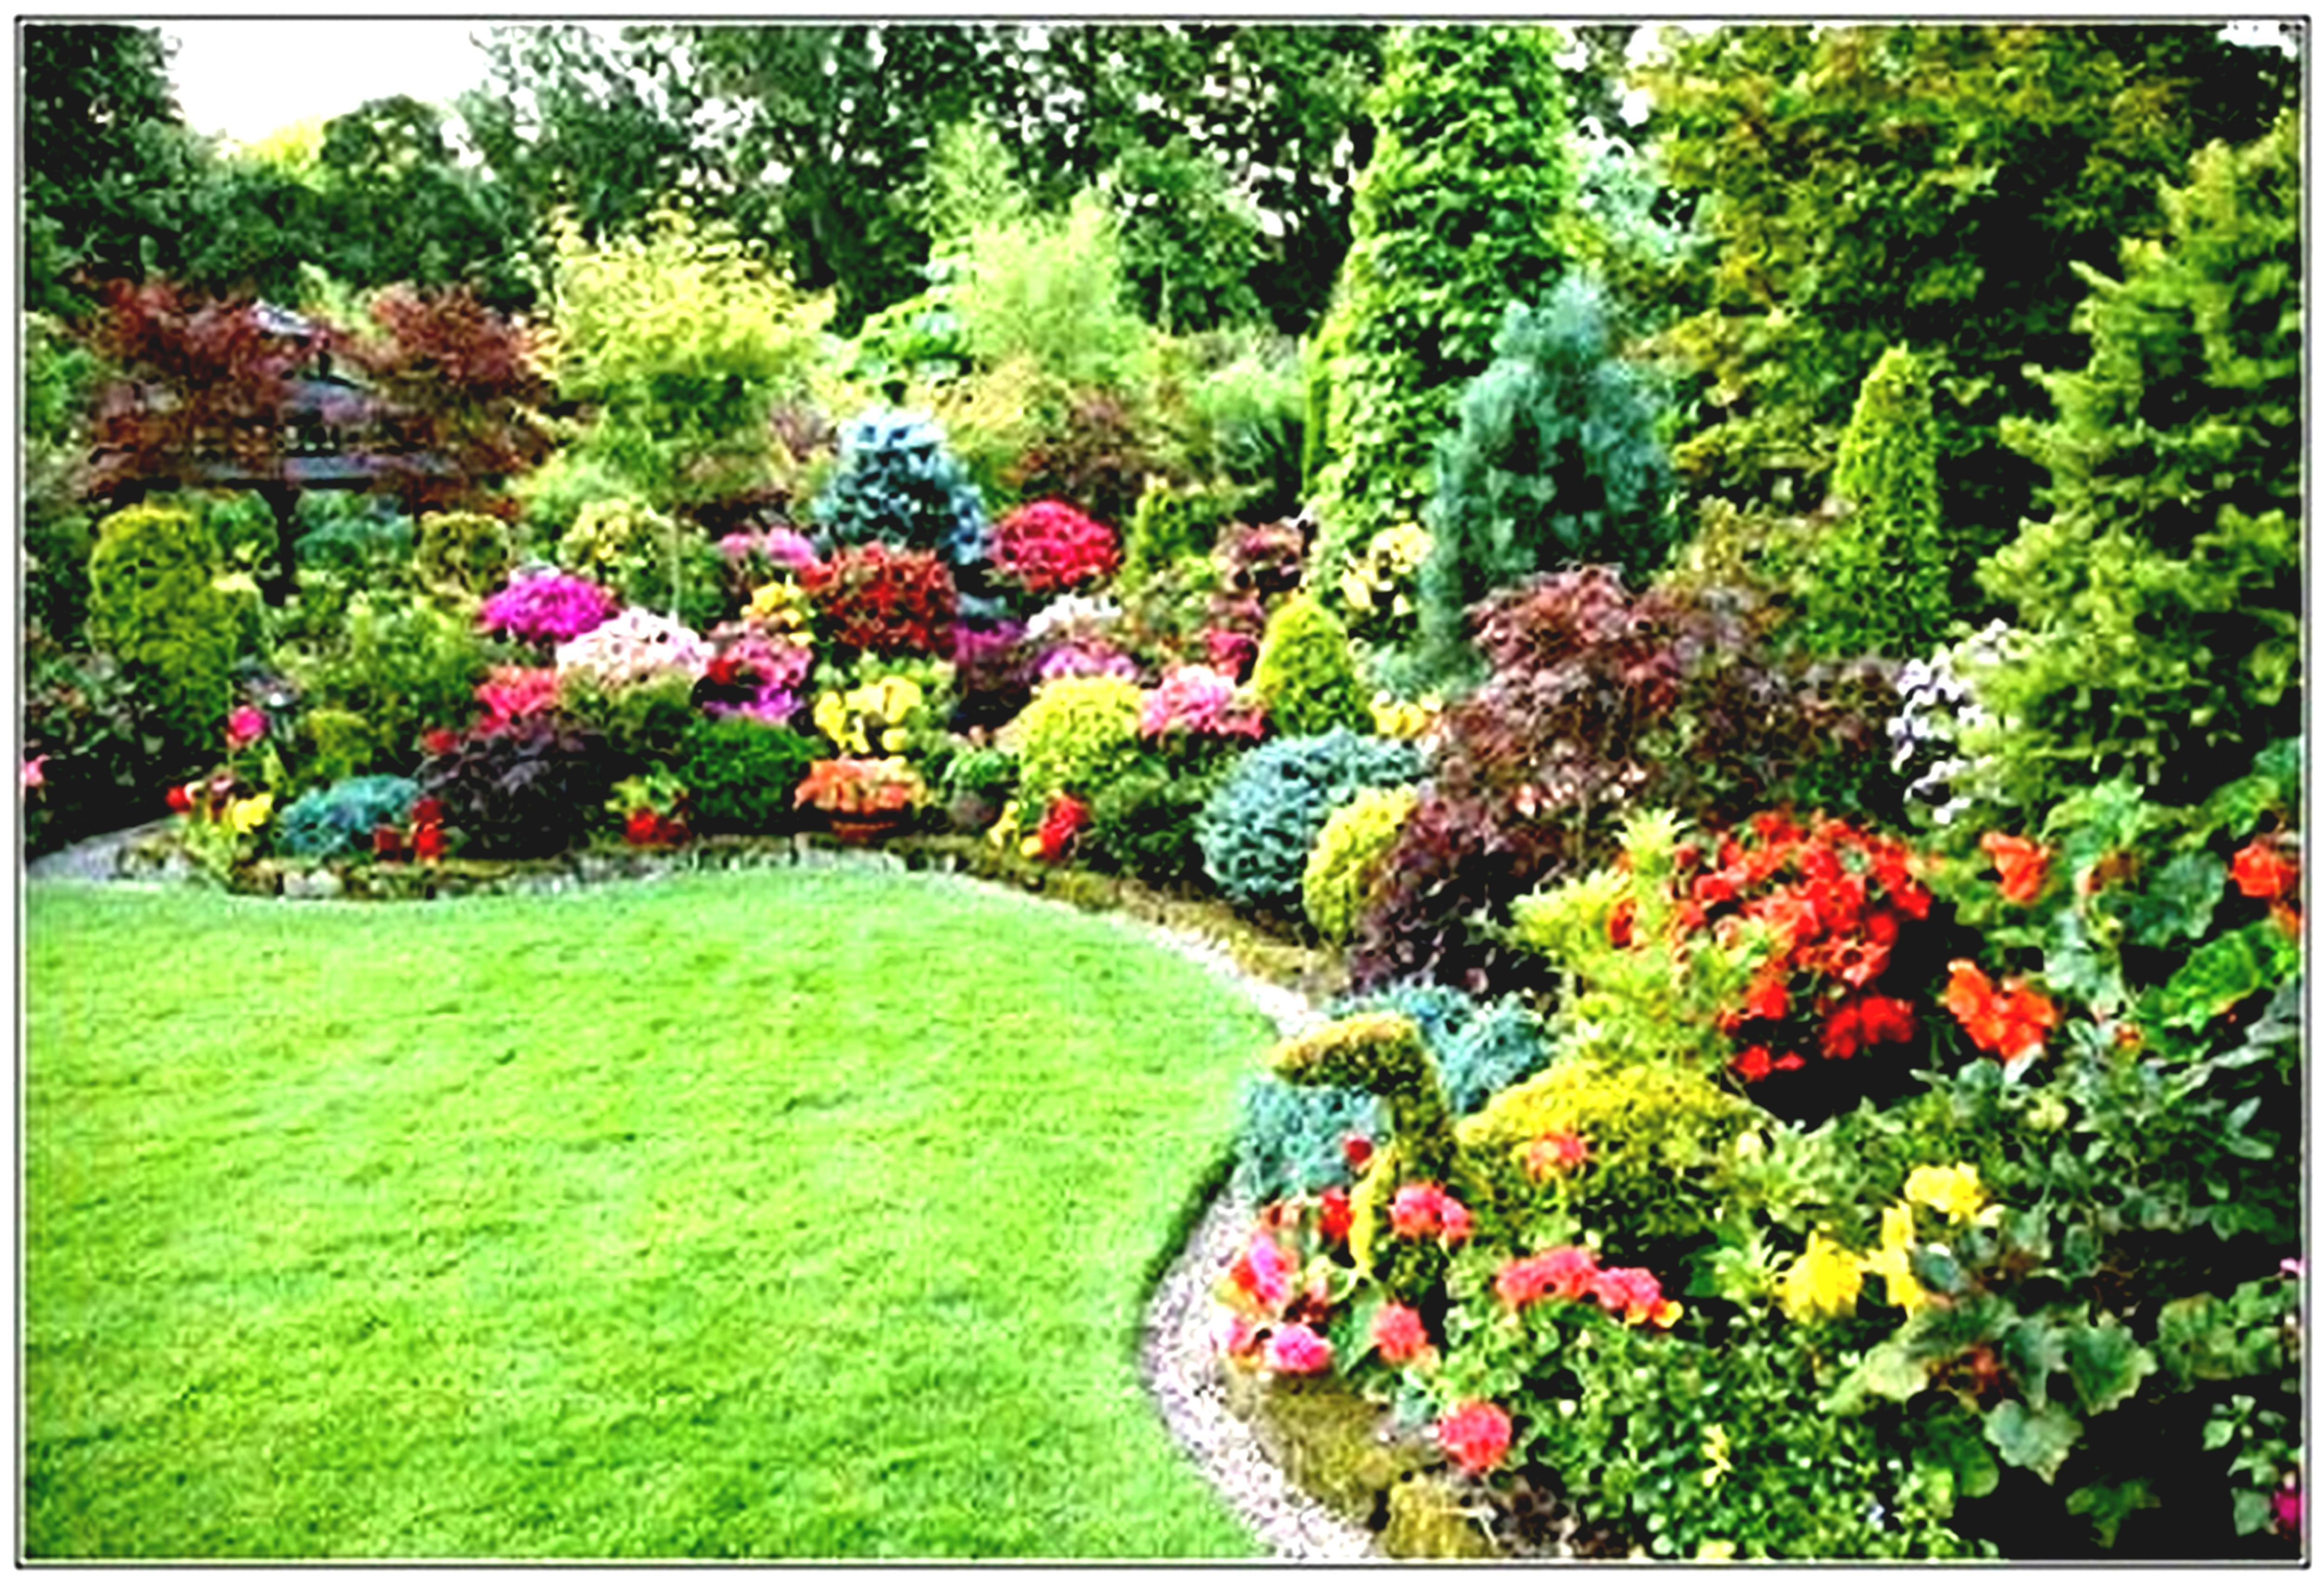 Backyard Flower Gardens Plans Amazing Garden And Layouts House with regard to Small Backyard Flower Garden Plans